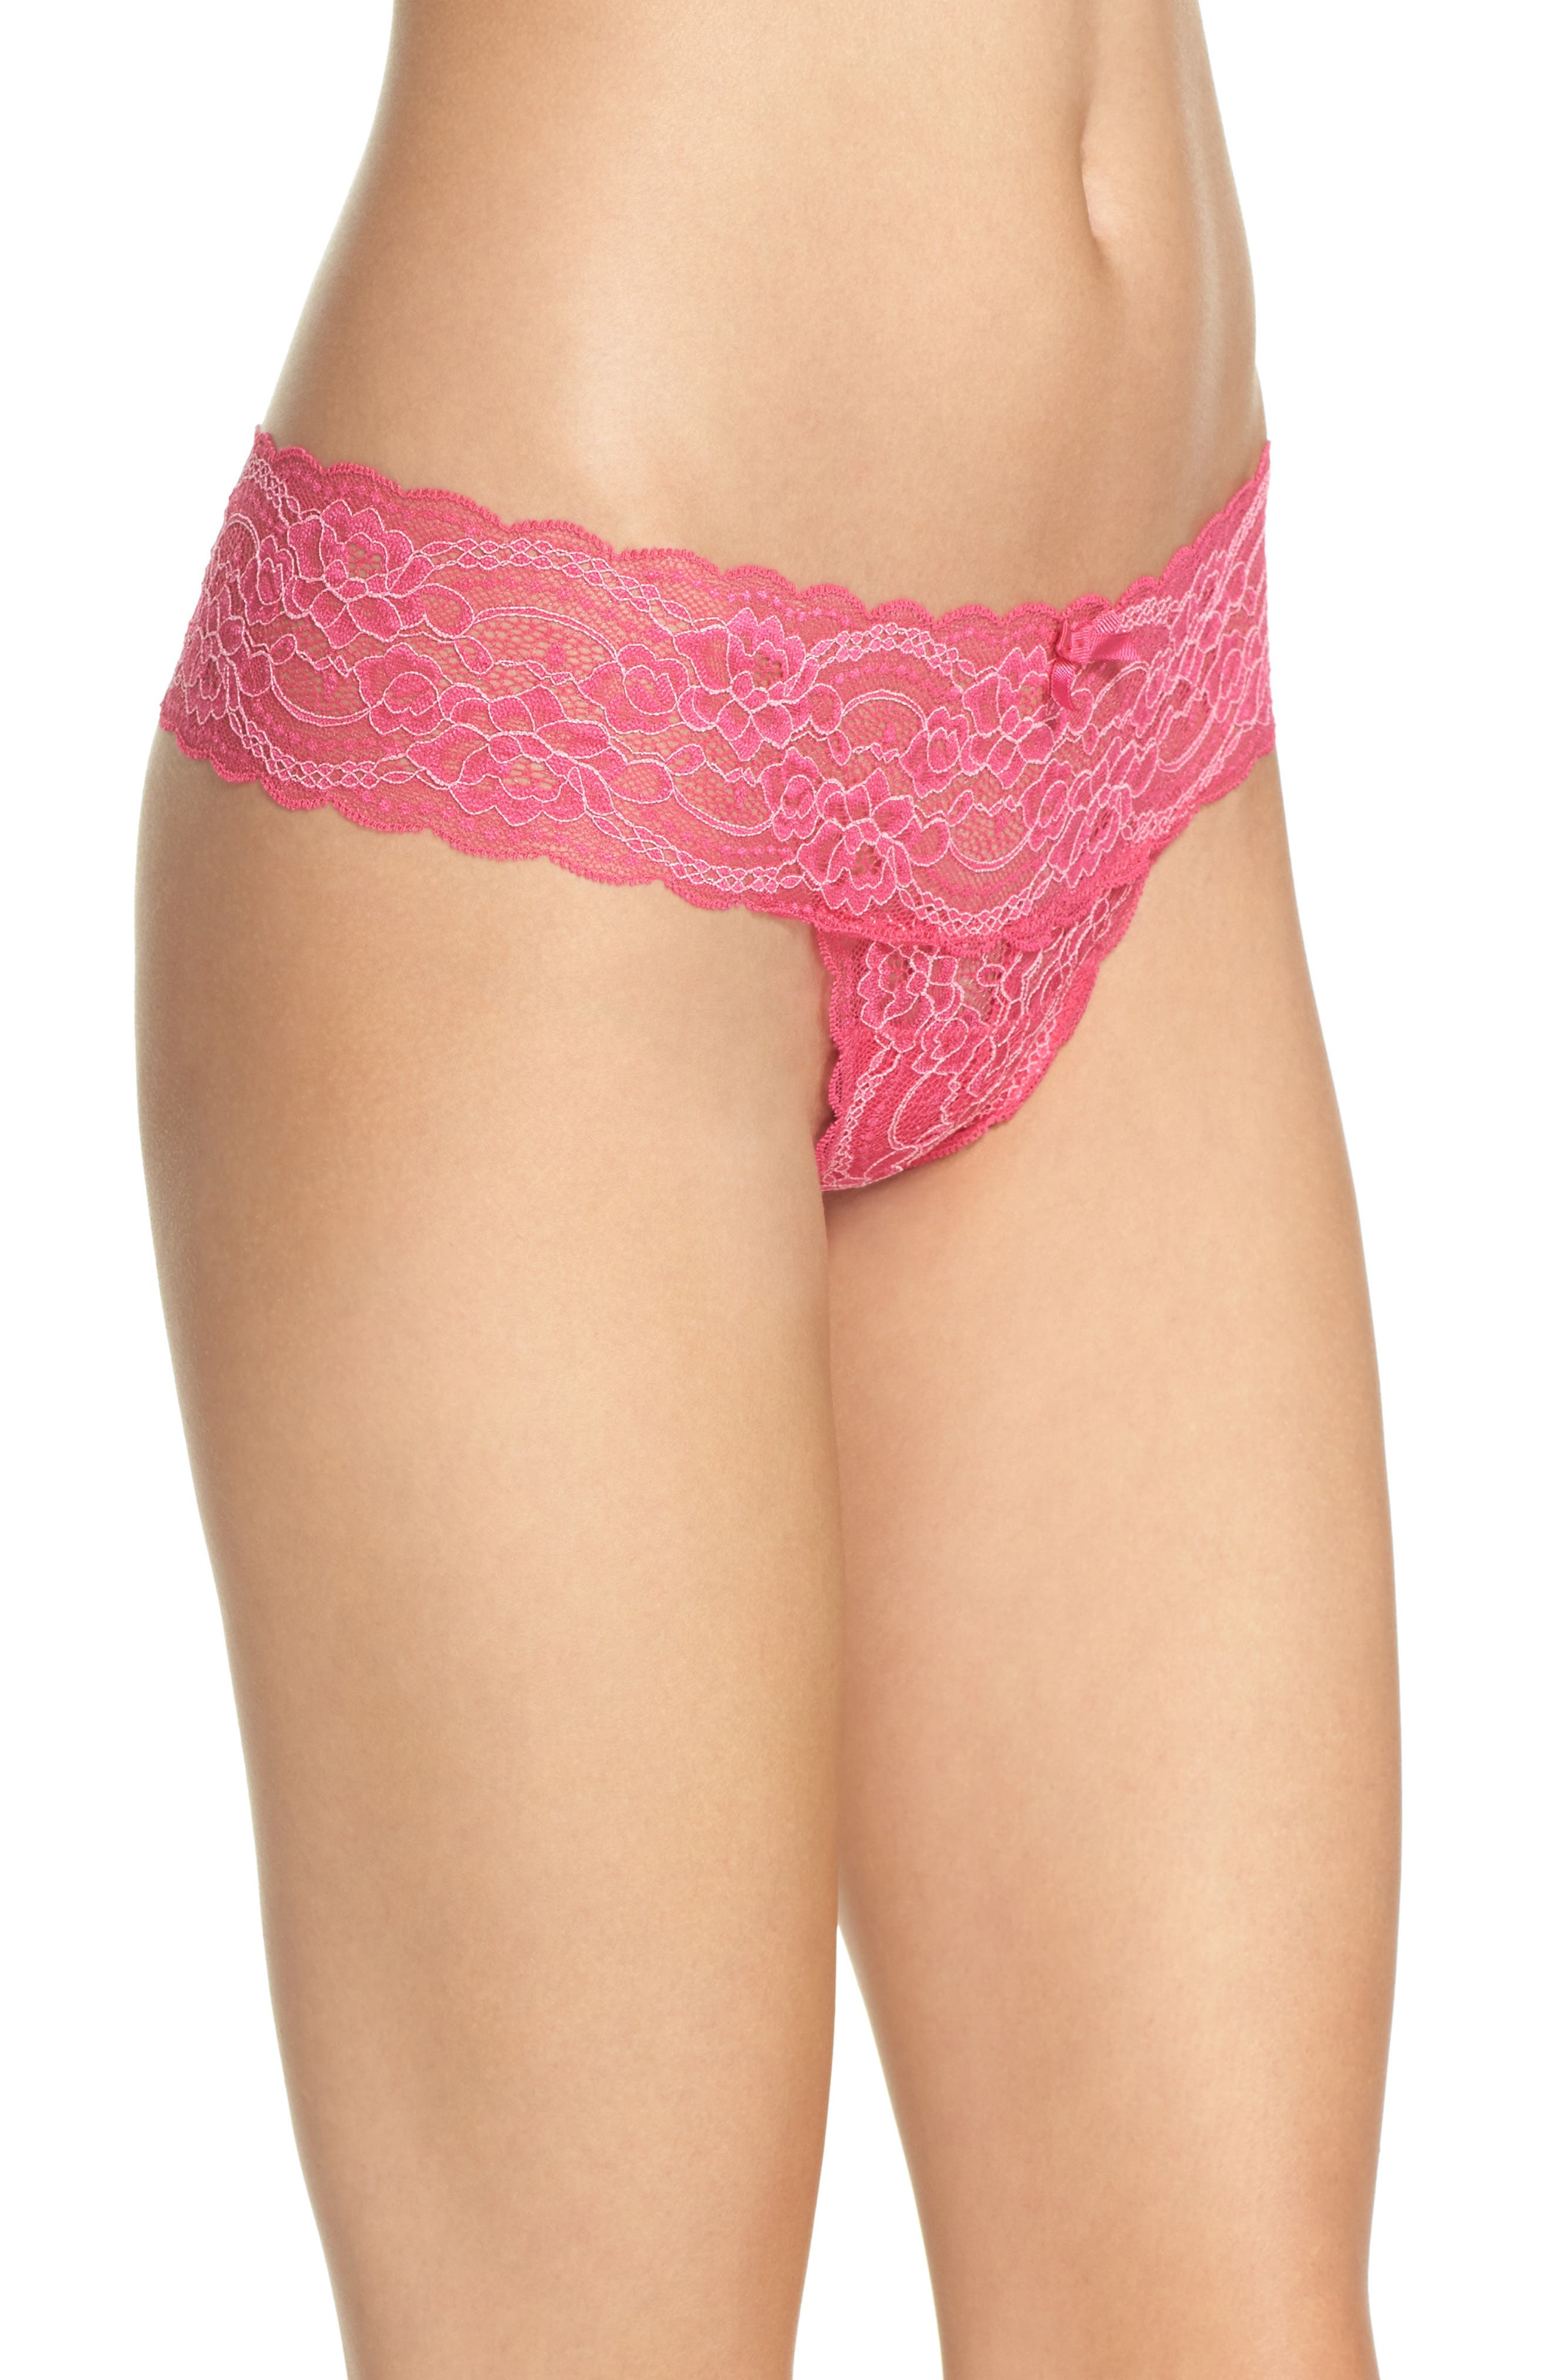 'Obsessed' Lace Thong,                             Alternate thumbnail 3, color,                             Confetti / Soft Pink